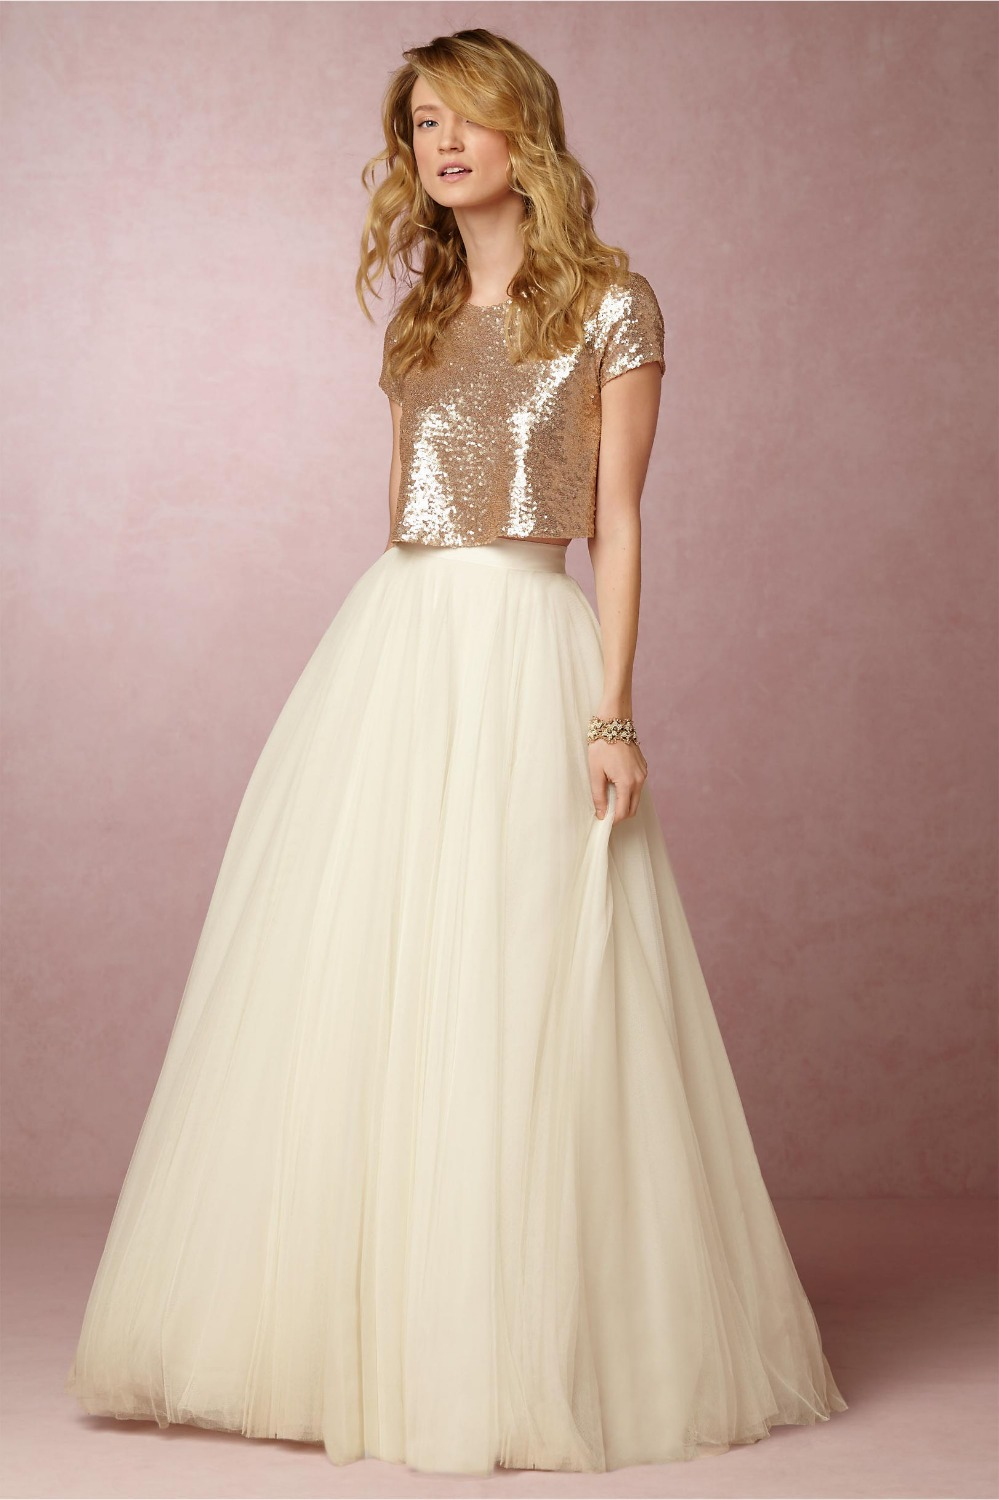 Popular 2 Piece Bridal Gowns Buy Cheap 2 Piece Bridal